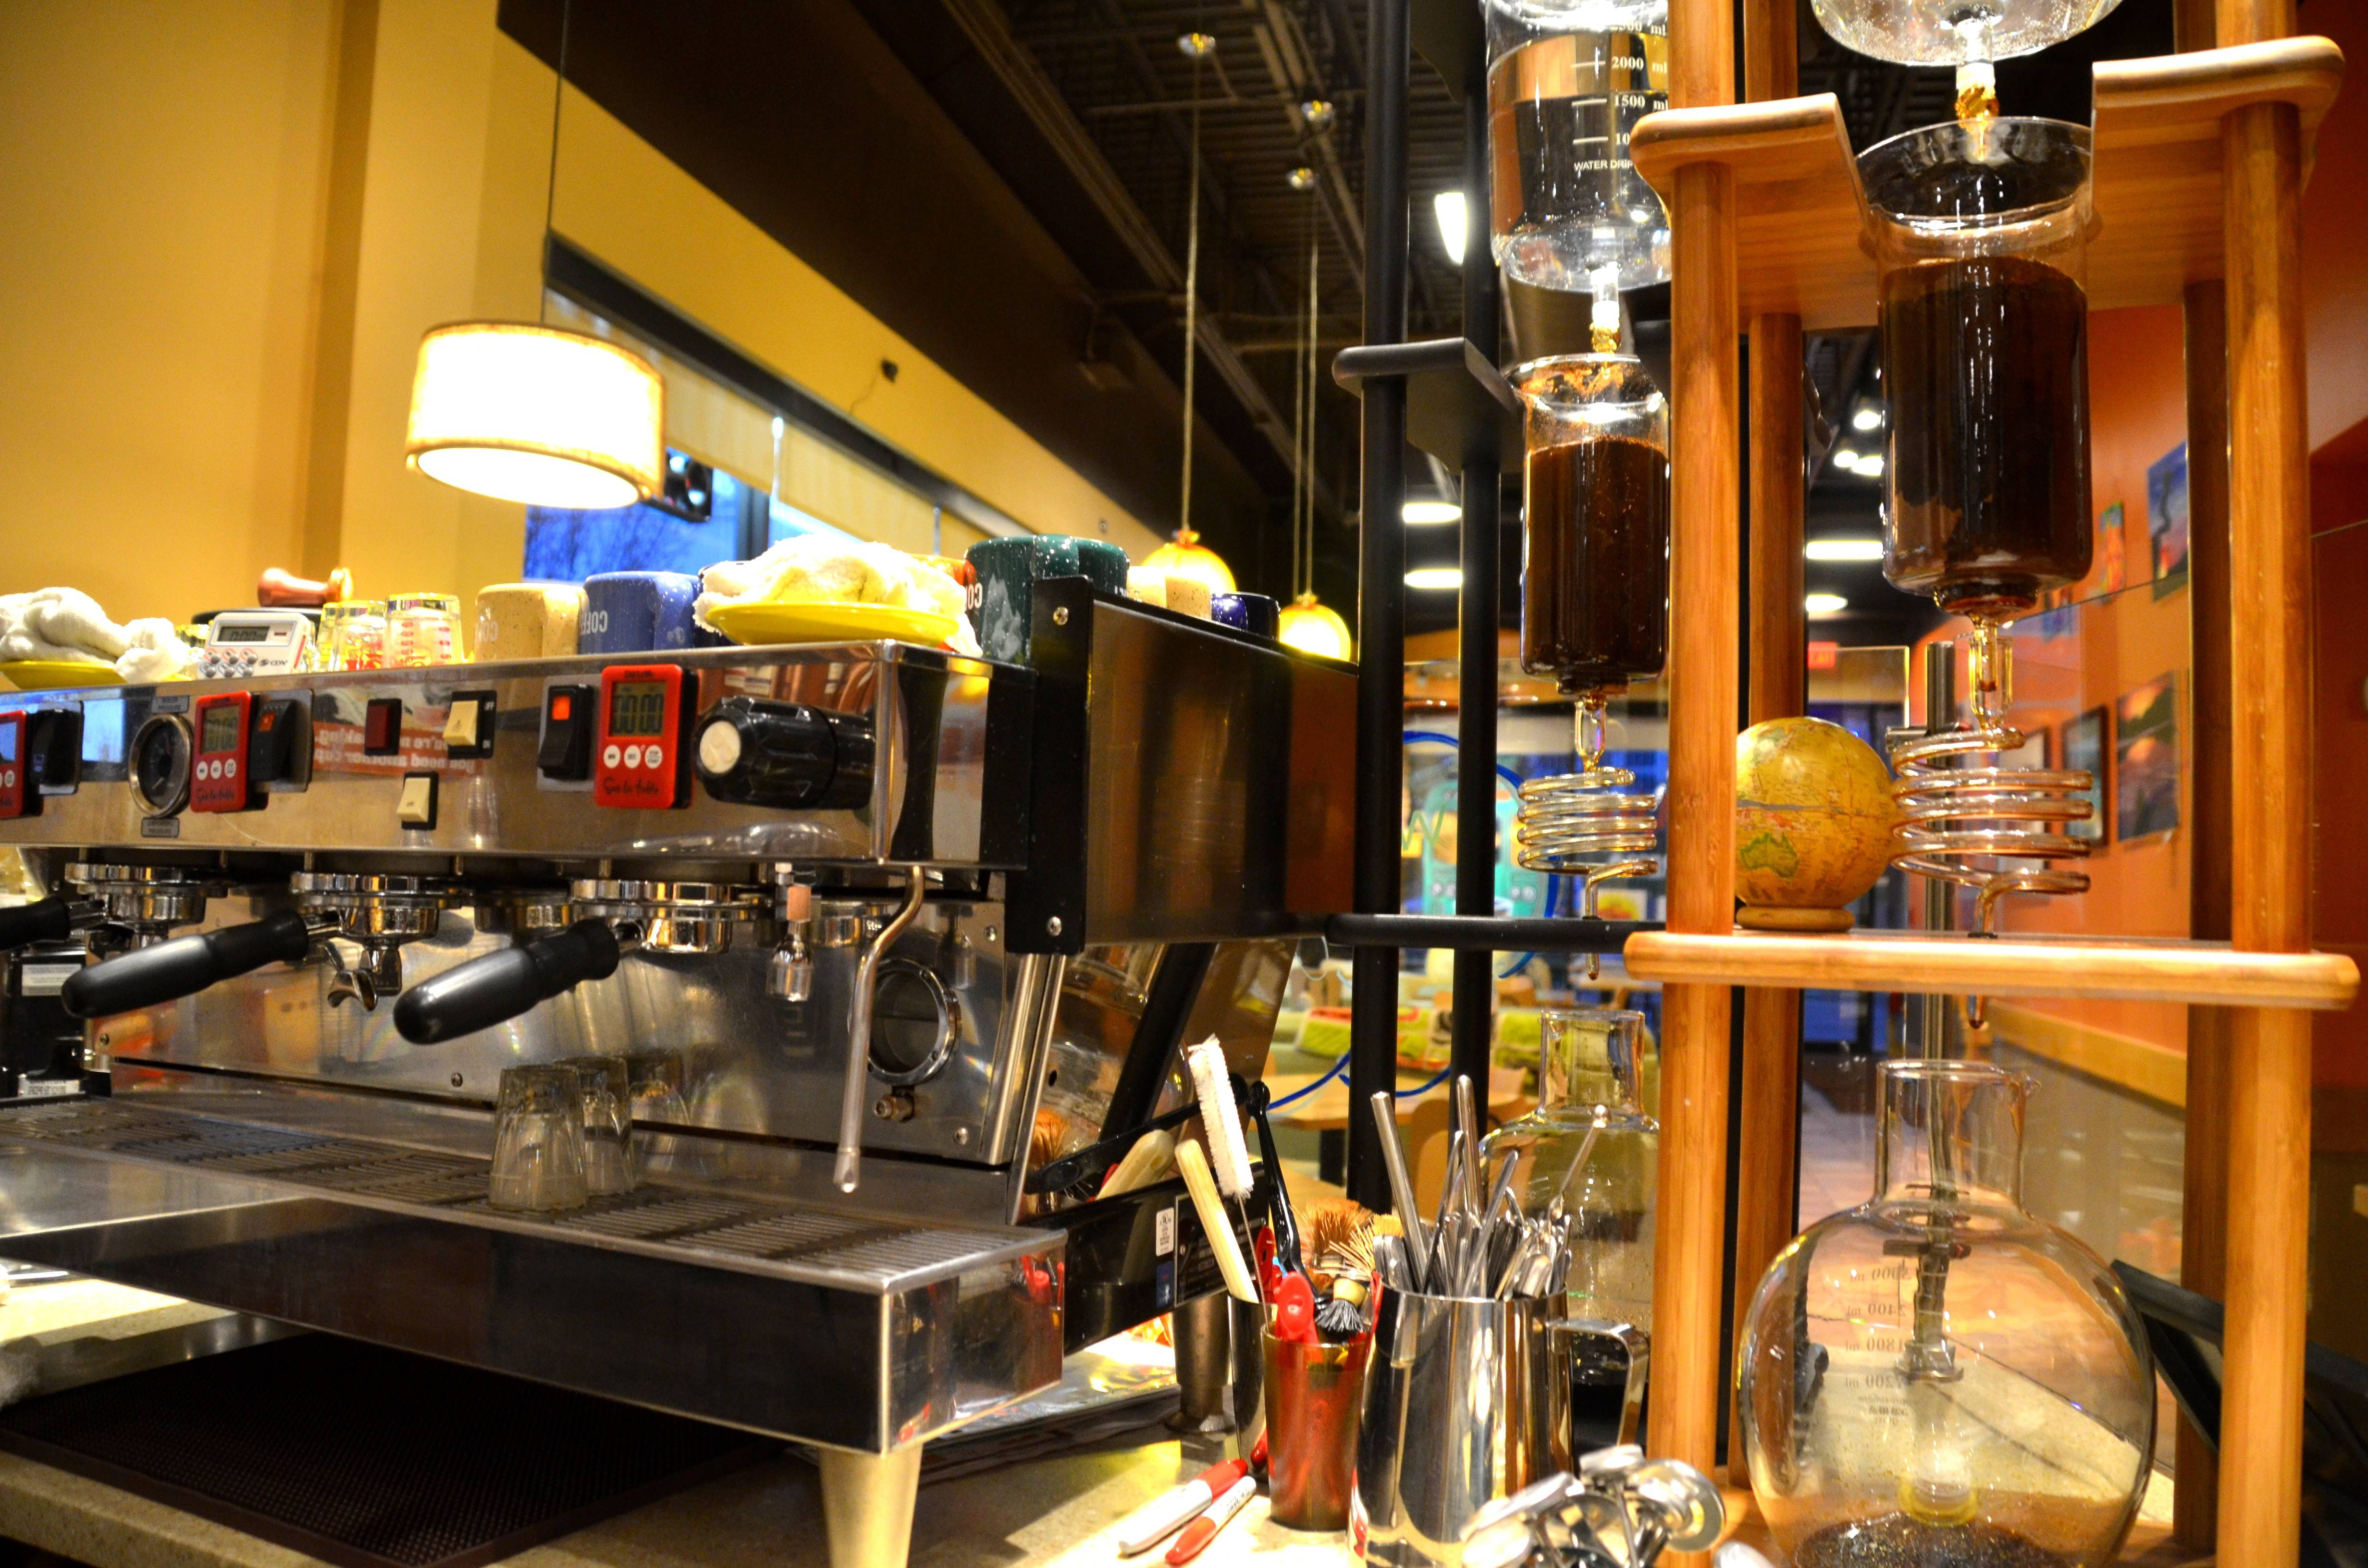 Diana and Jim Rudd own and operate Coffee Planet in Rolling Meadows.